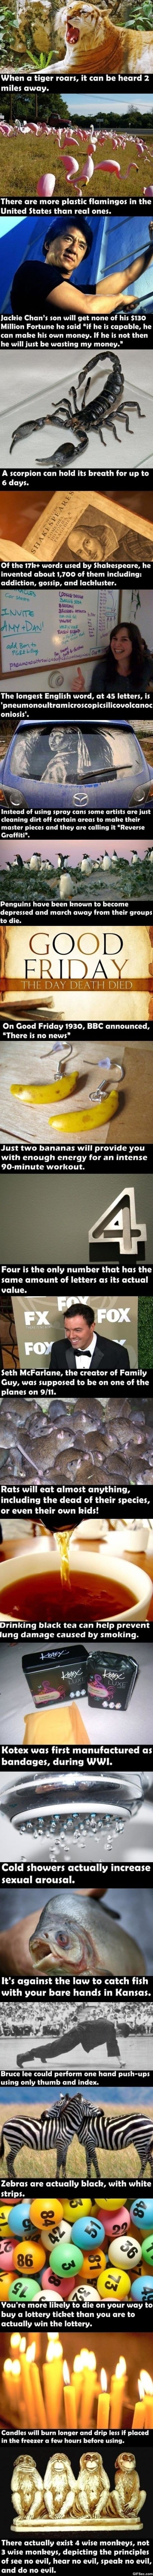 funny-pics-fun-facts-meme